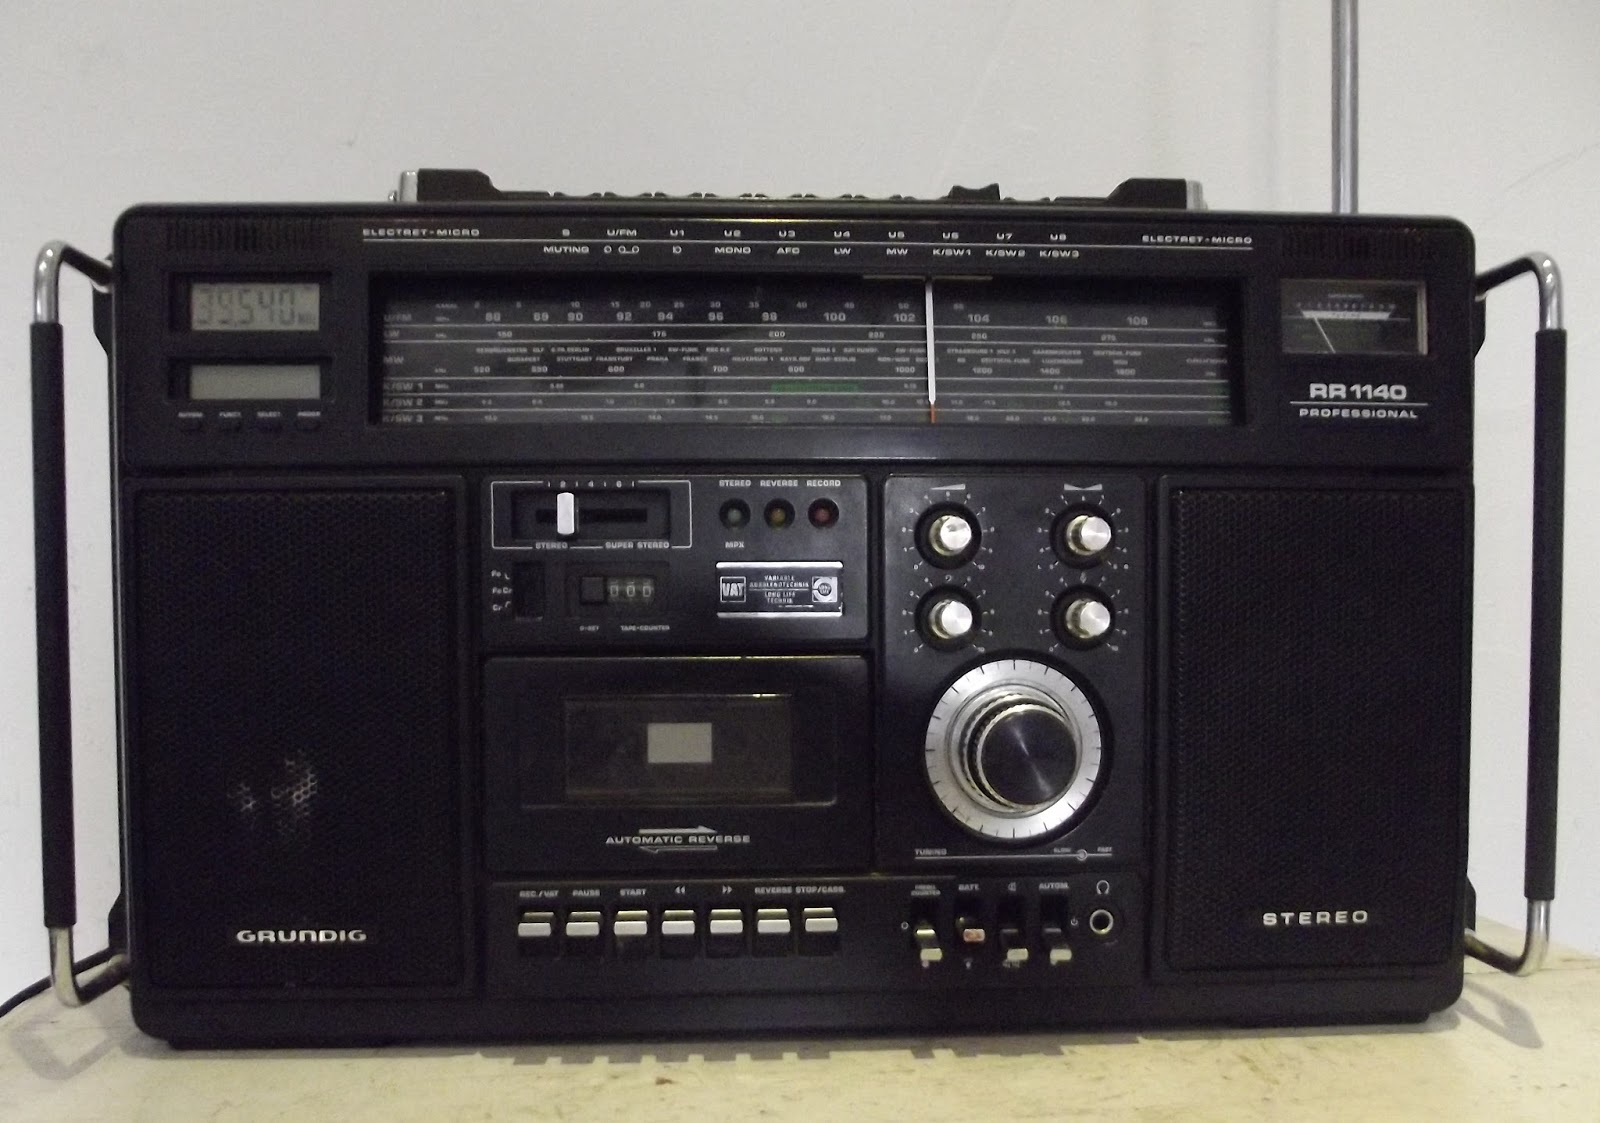 ancienne radio poste transistor grundig rr1140 professional boombox. Black Bedroom Furniture Sets. Home Design Ideas